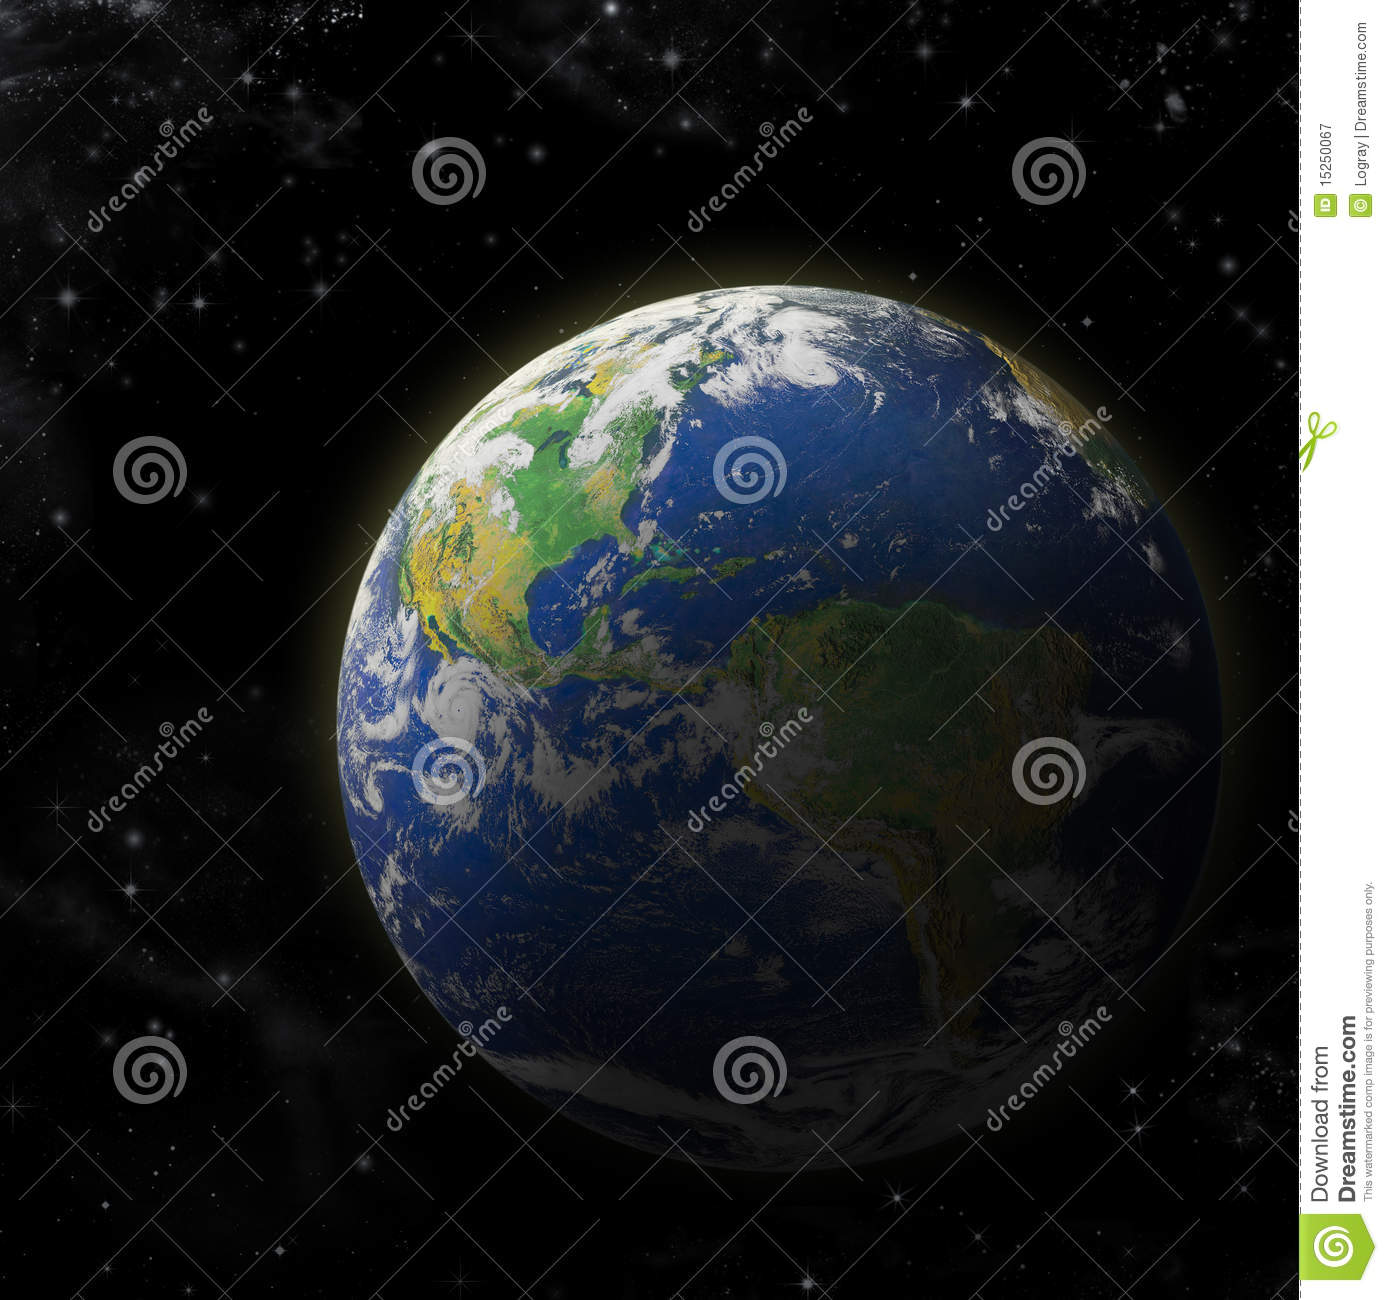 real pictures of earth the planet - photo #46